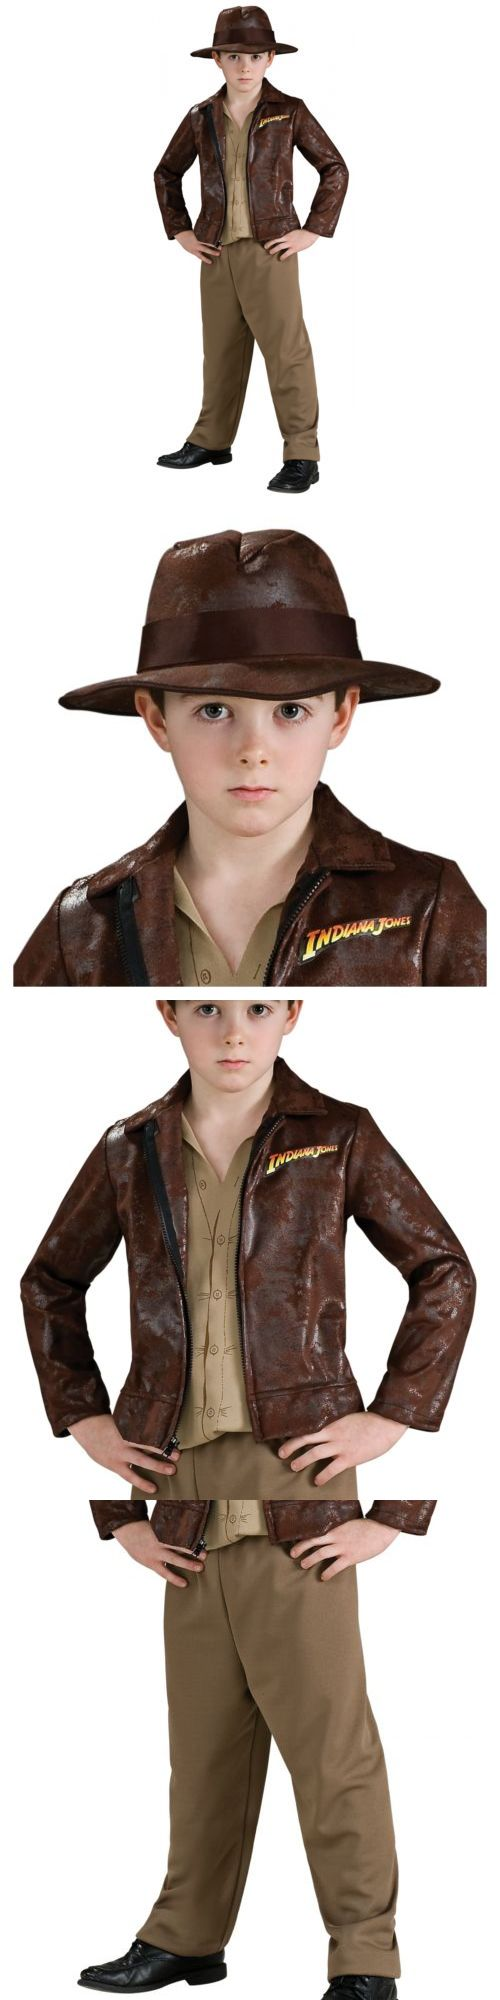 Halloween Costumes: Indiana Jones Costume Kids Boys Treasure Hunter Halloween Fancy Dress -> BUY IT NOW ONLY: $30.29 on eBay!